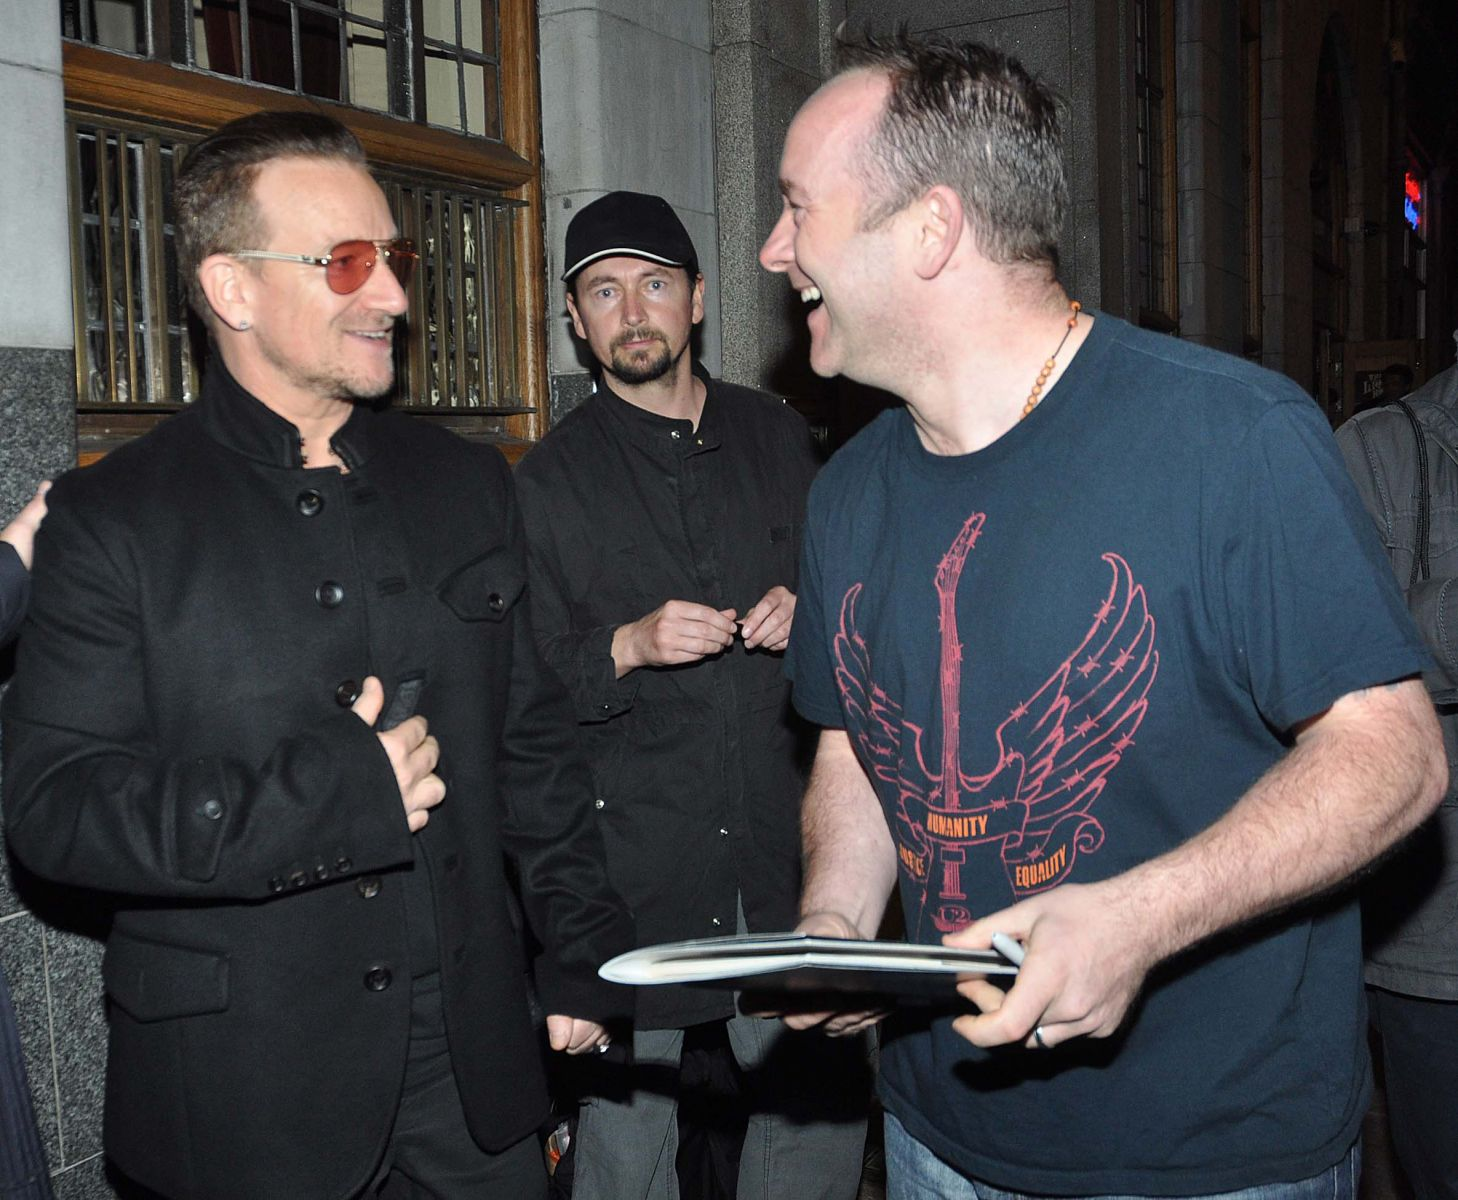 lol-ing with Bono